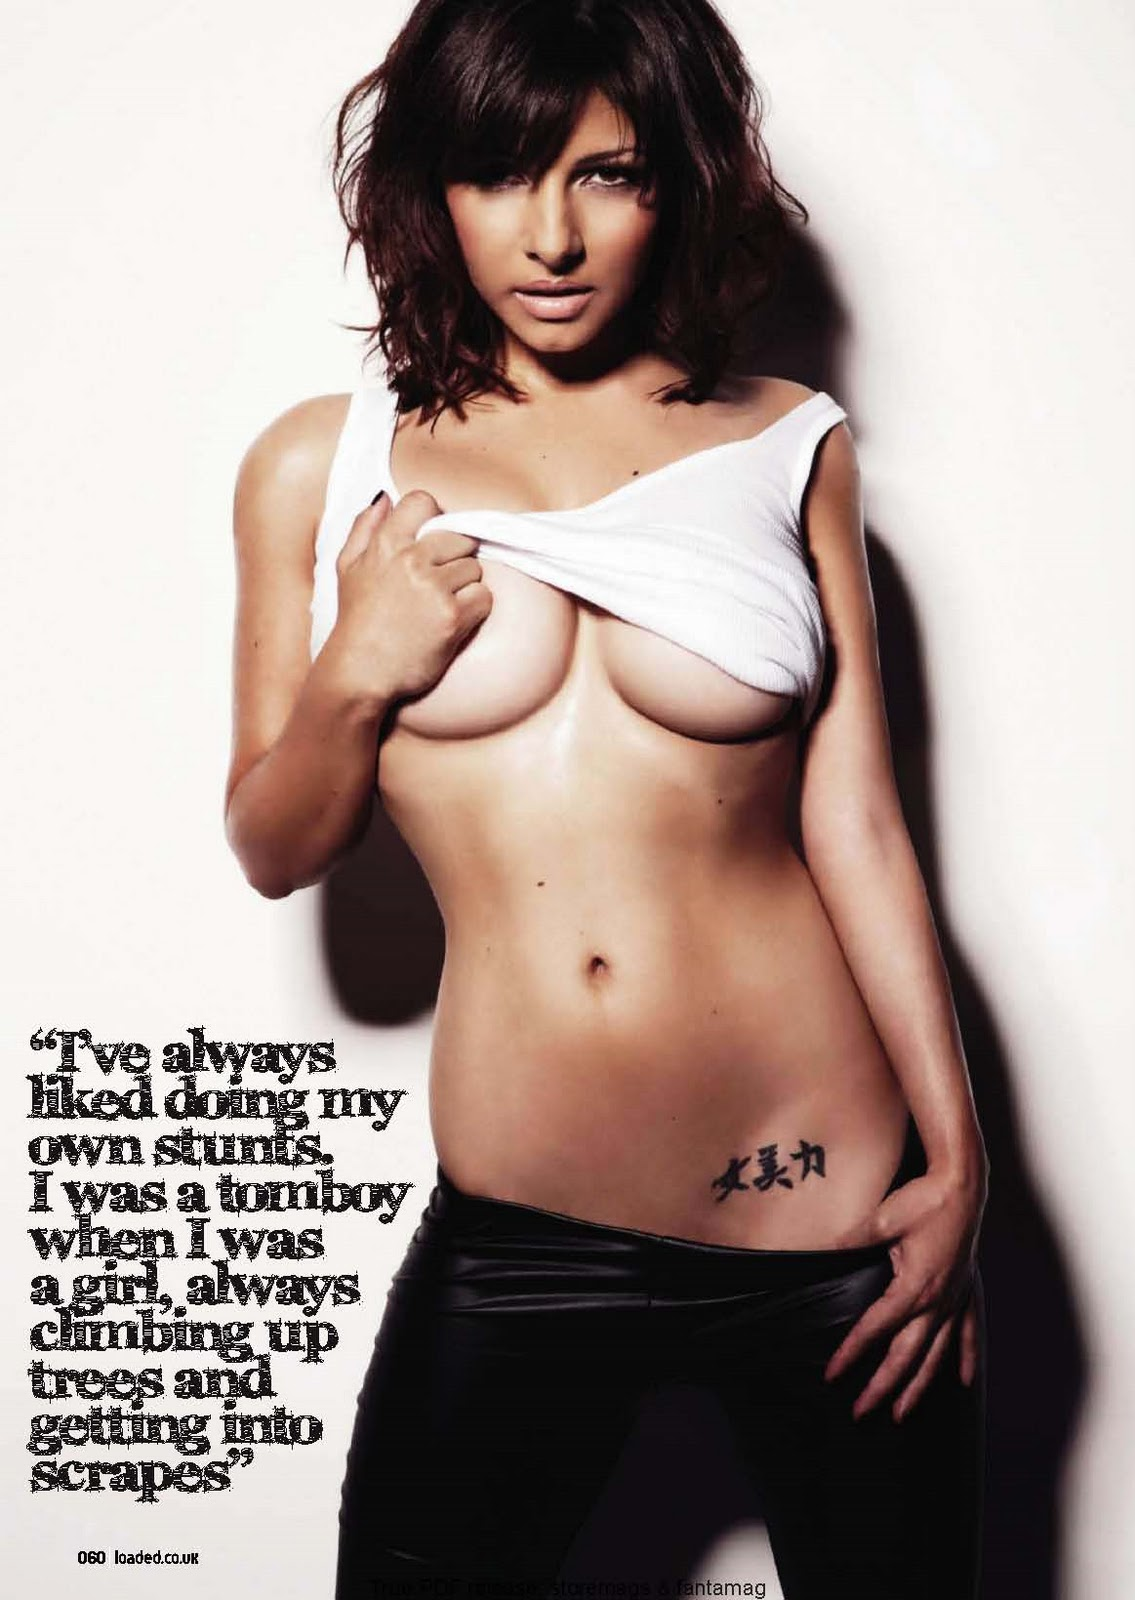 Roxanne Pallett   Loaded - UK  November 2010Roxanne Pallett Tattoos